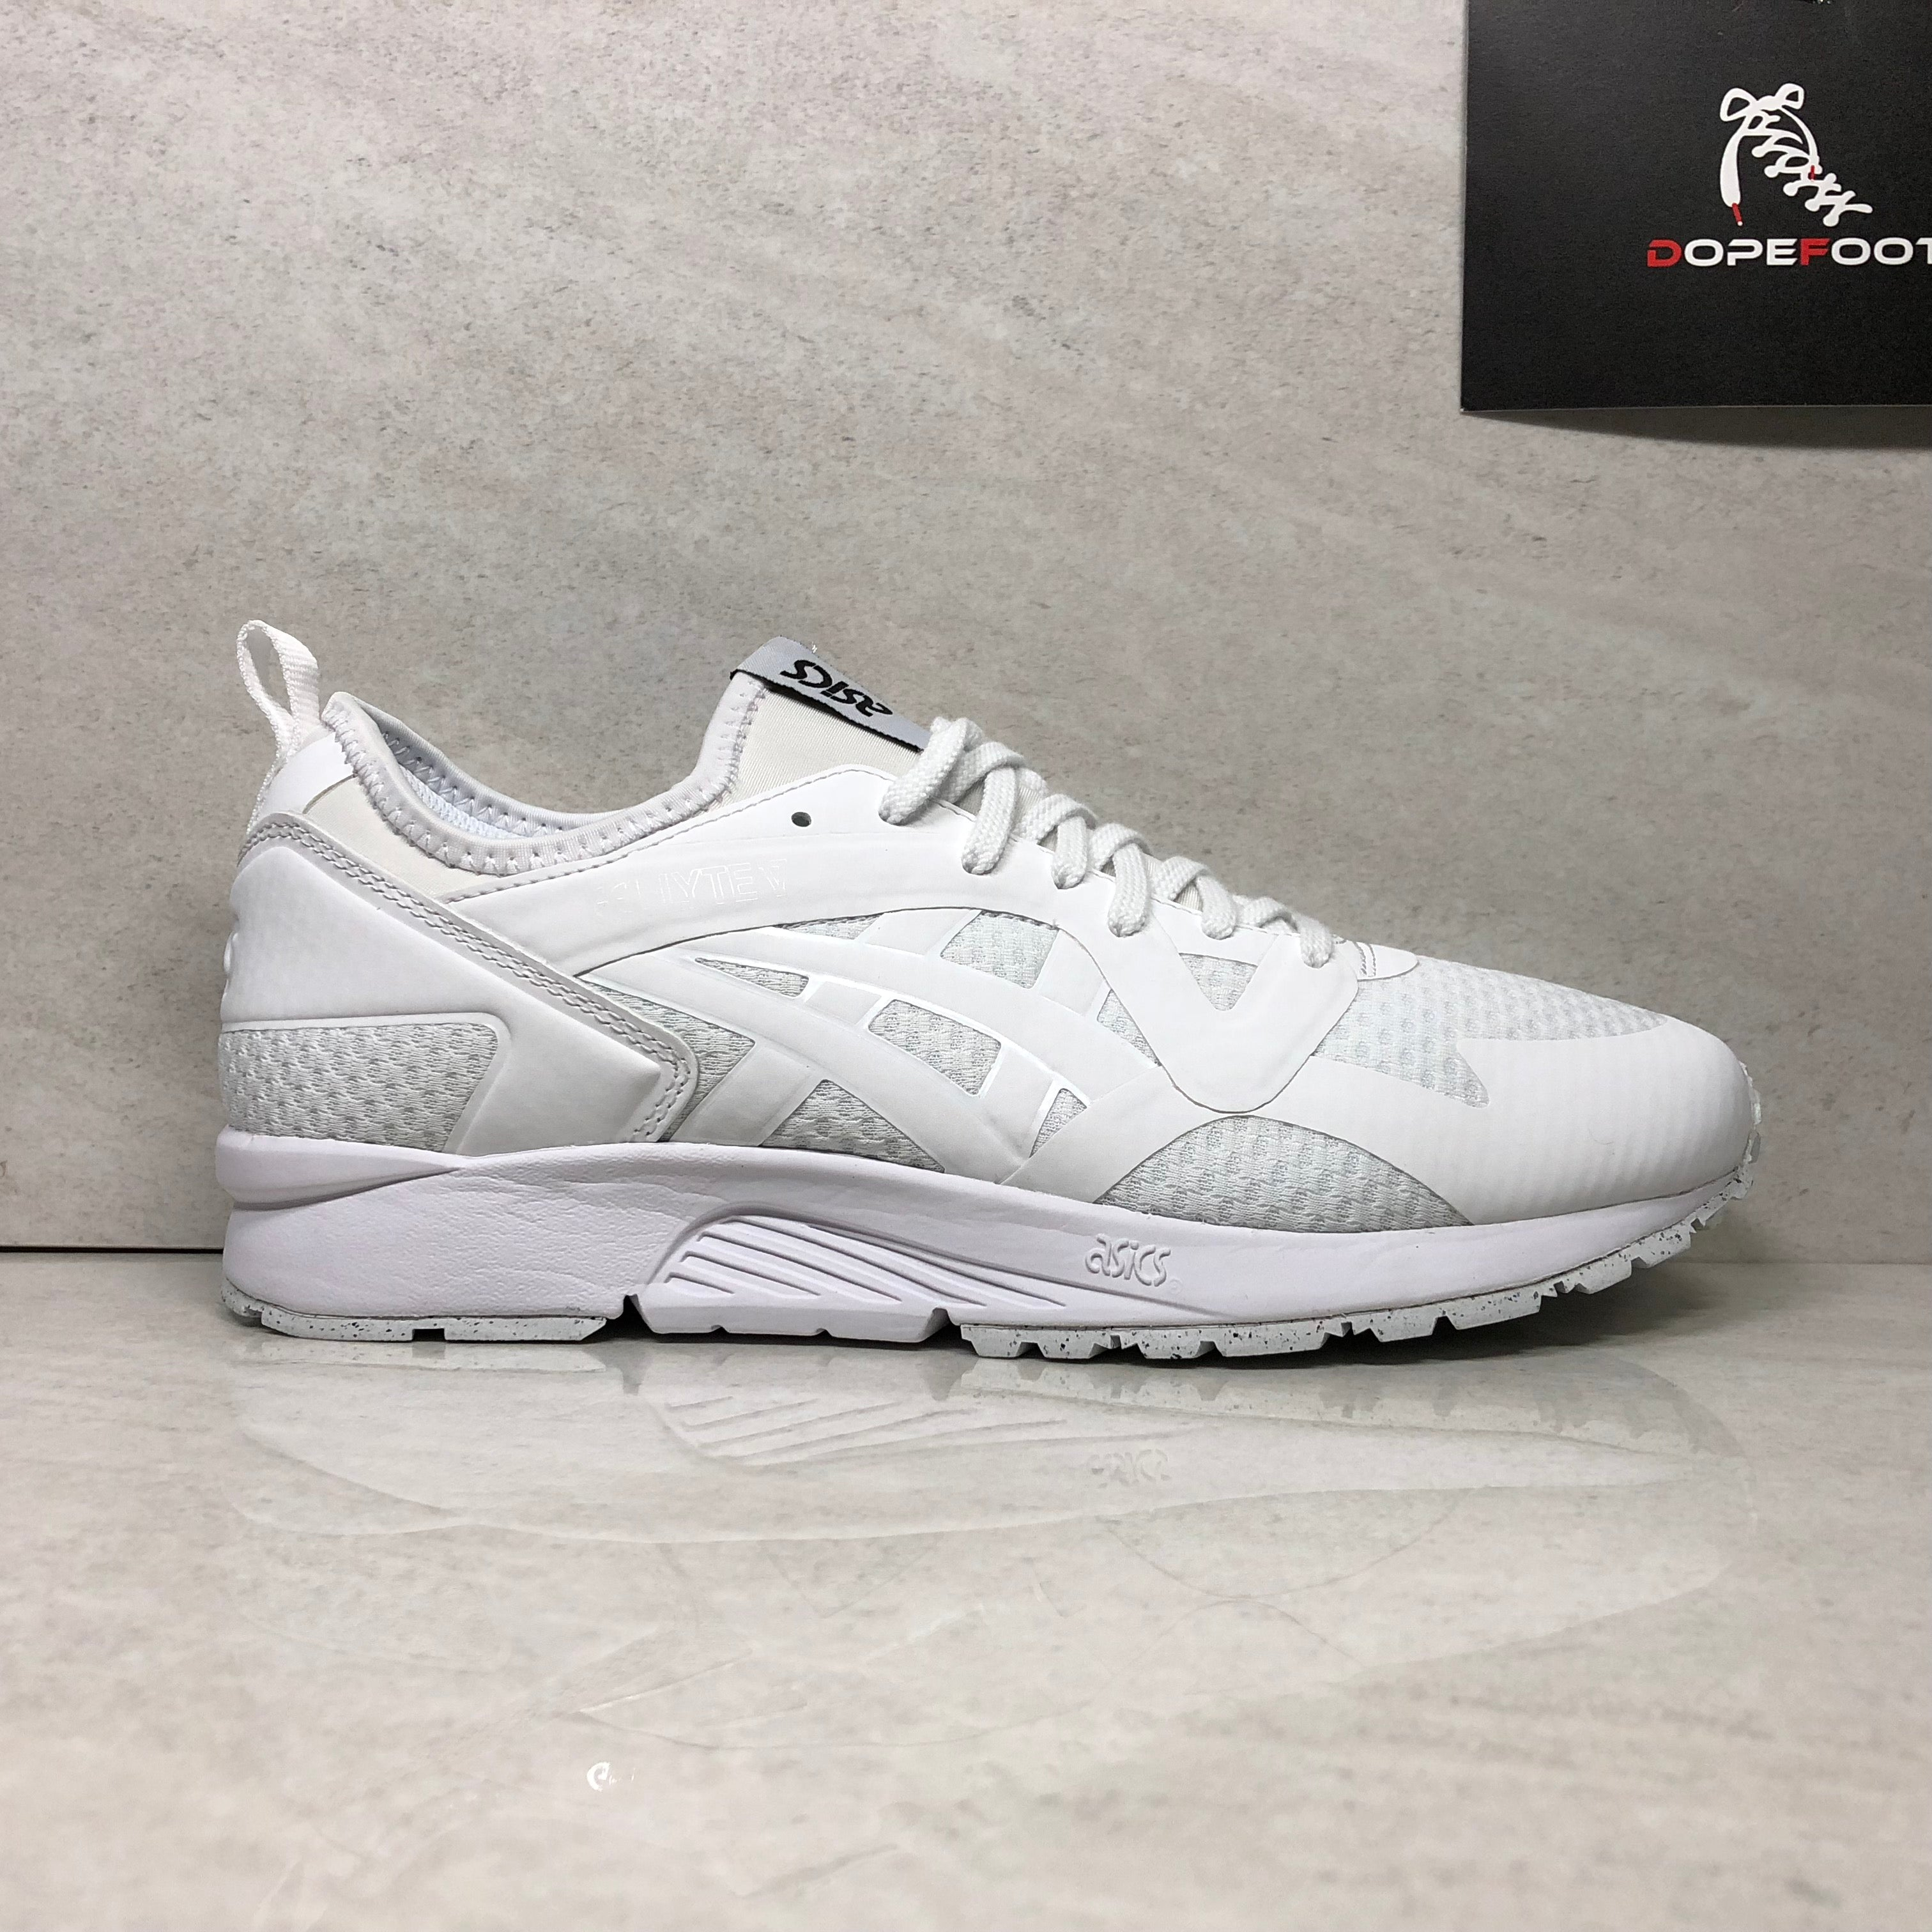 the best attitude 3e078 f5bcd DS ASICS Tiger Gel Lyte V NS White Size 8/Size 10 HY7H4 0101 -